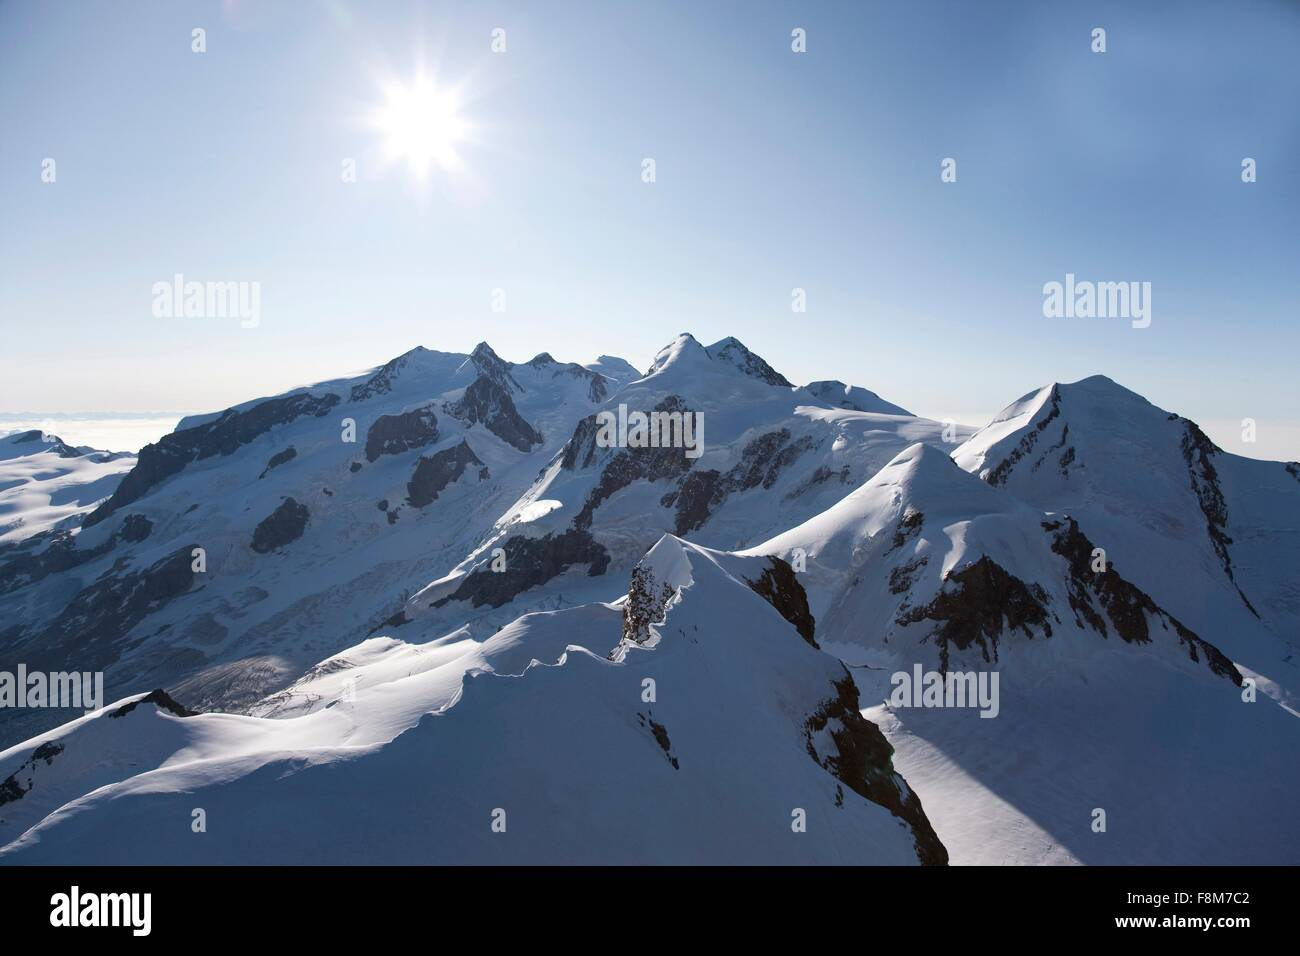 Swiss Alps in winter, Canton Wallis, Switzerland - Stock Image